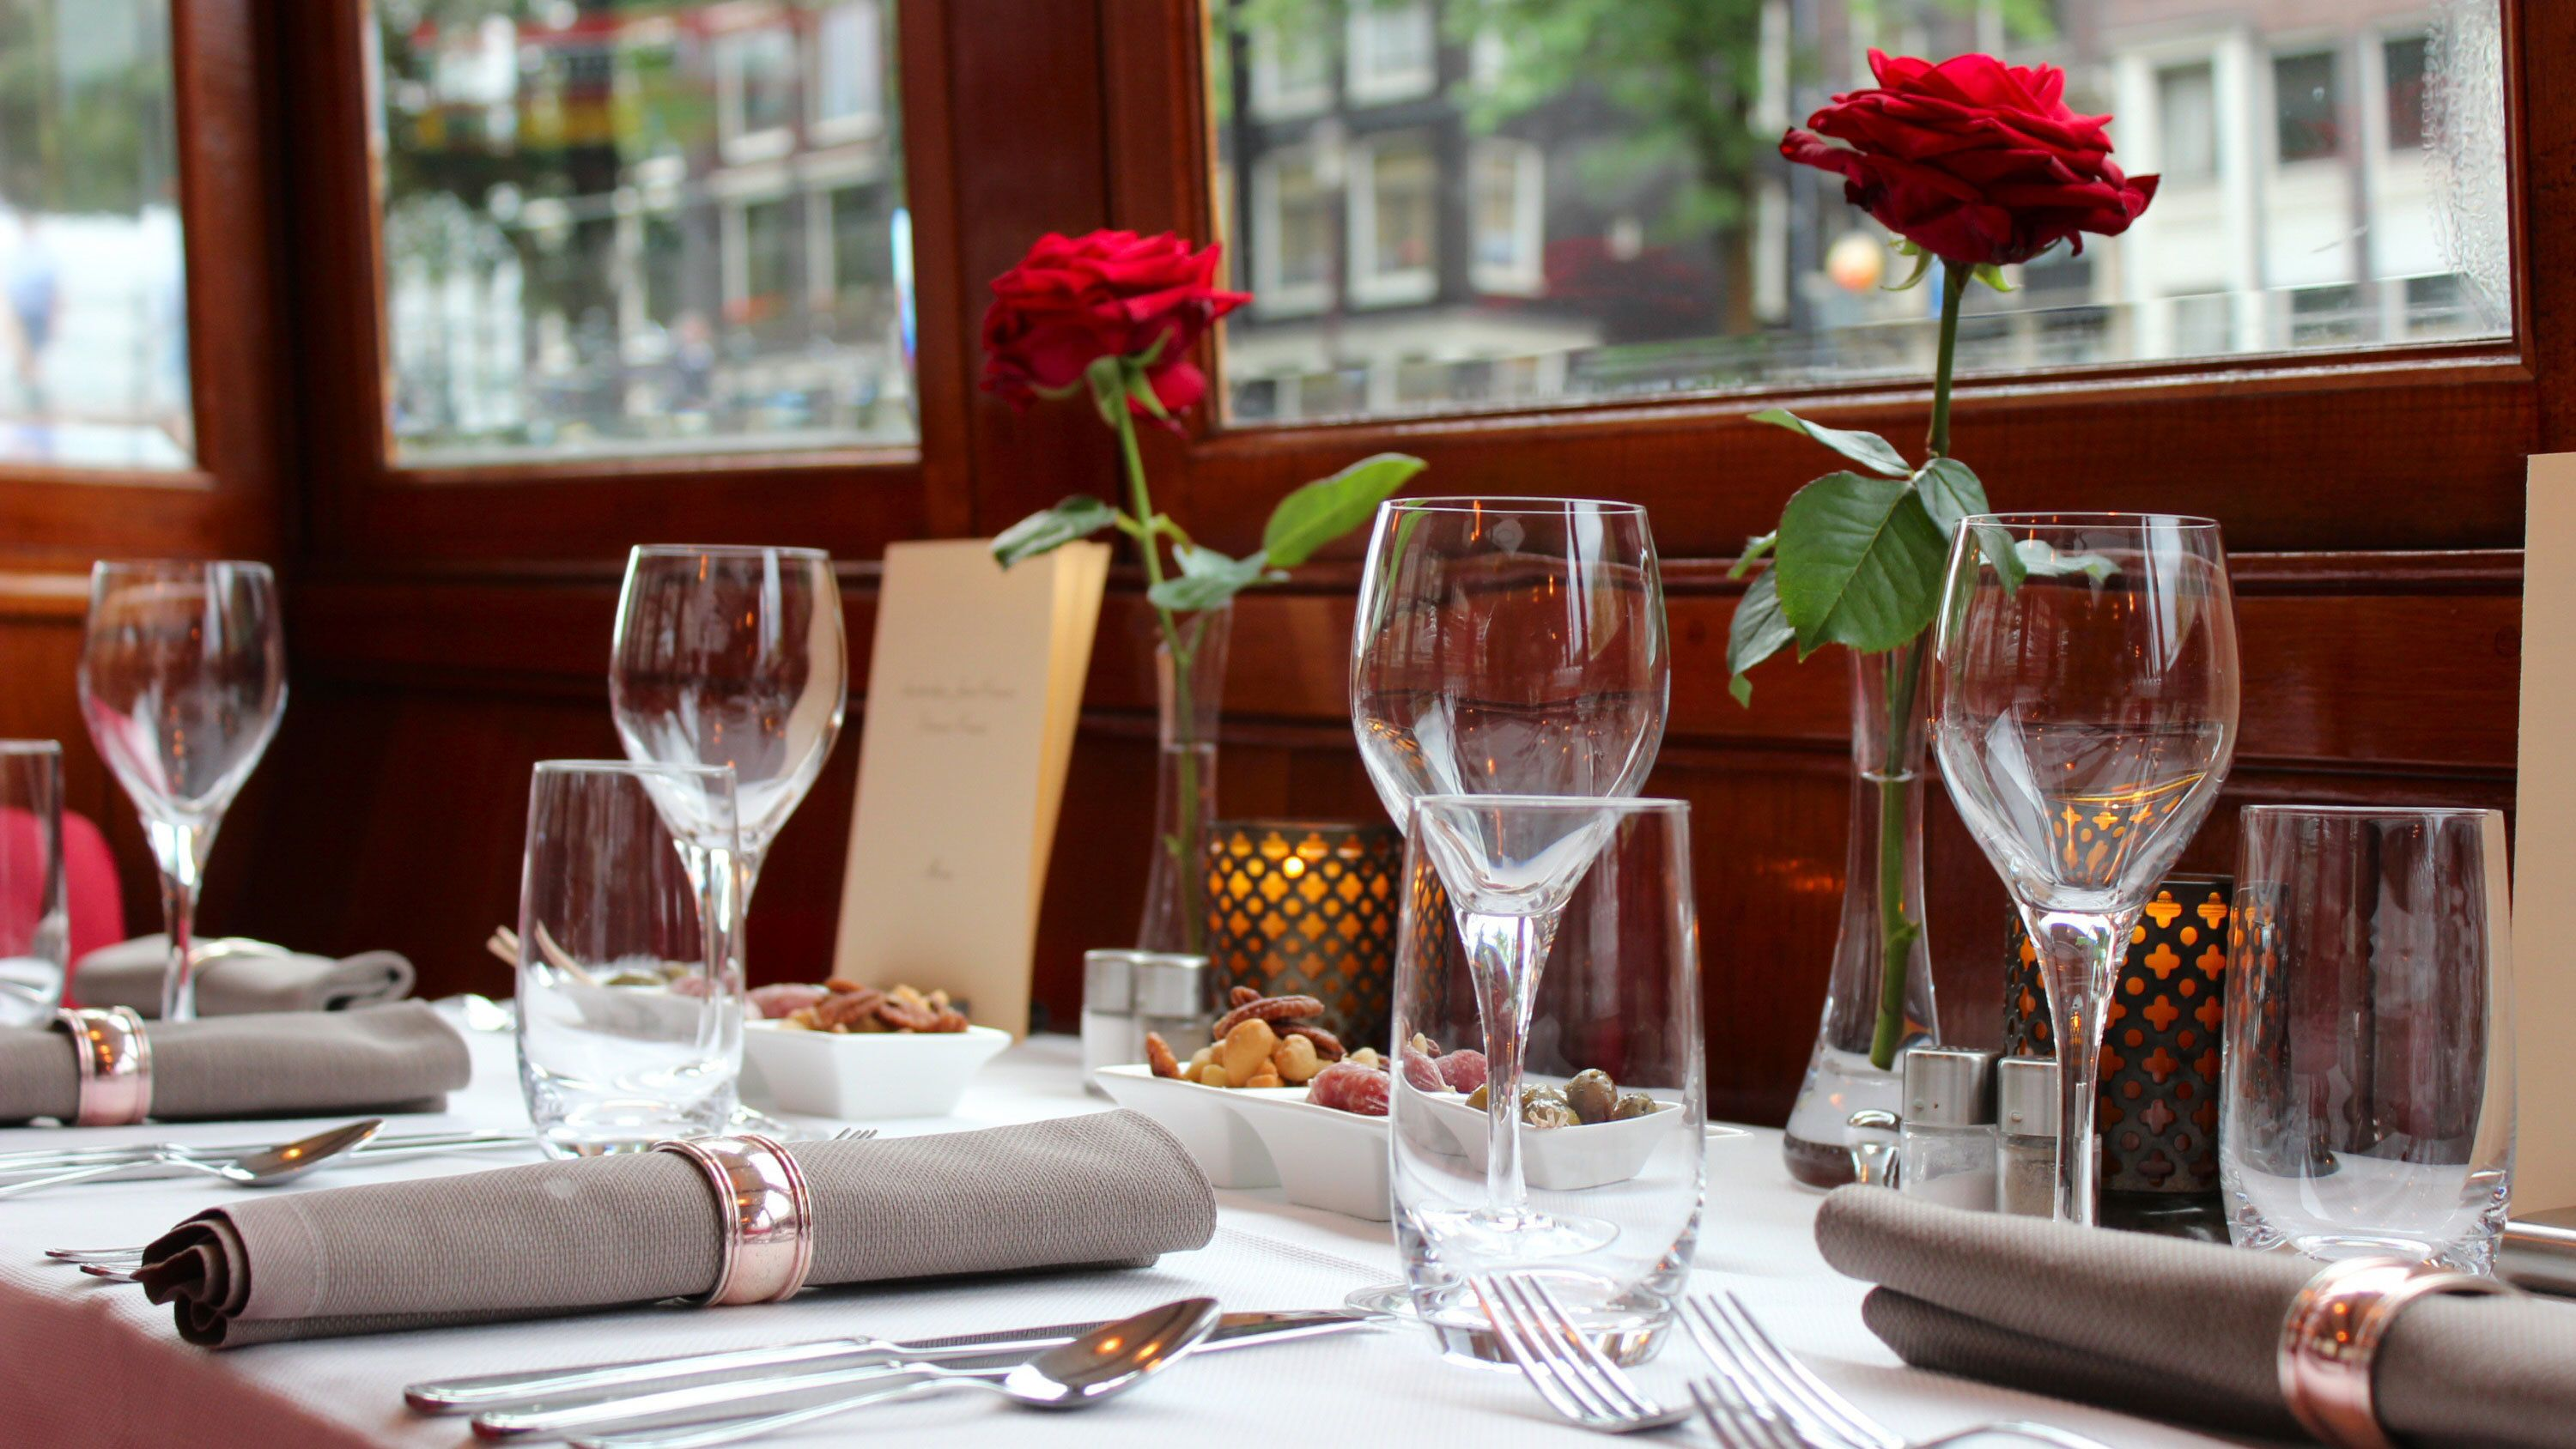 Dining setting on cruise boat in Amsterdam